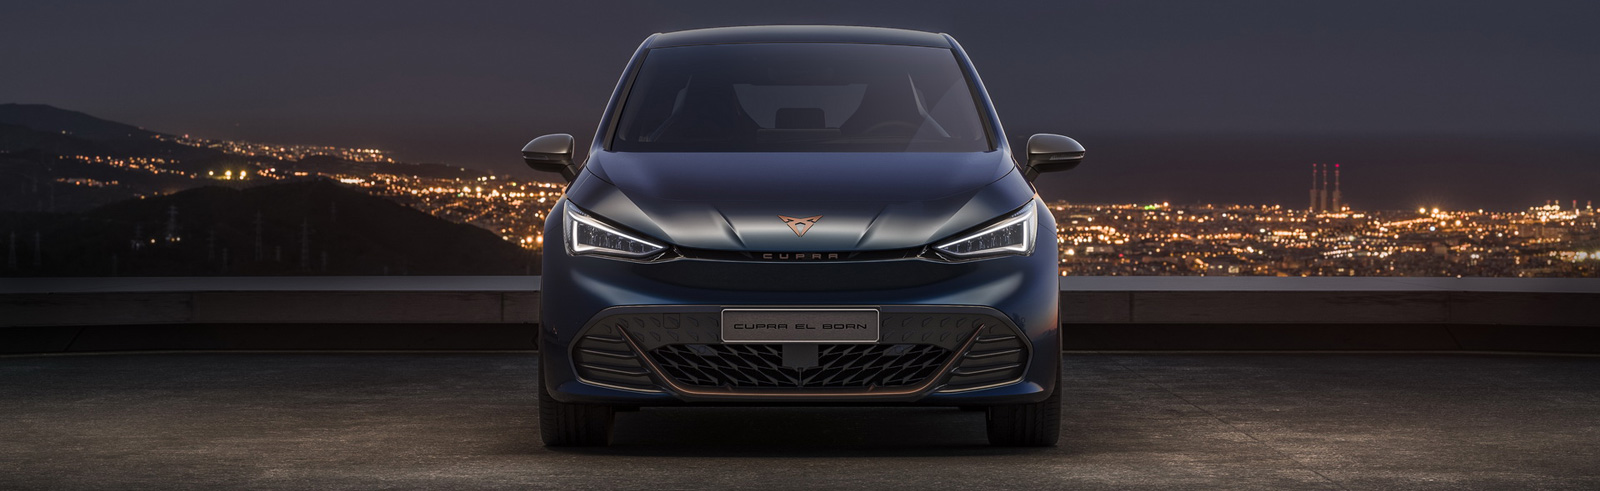 SEAT unveils the all-electric 2021 Cupra El Born, invests 5 billion euros in R&D by 2025